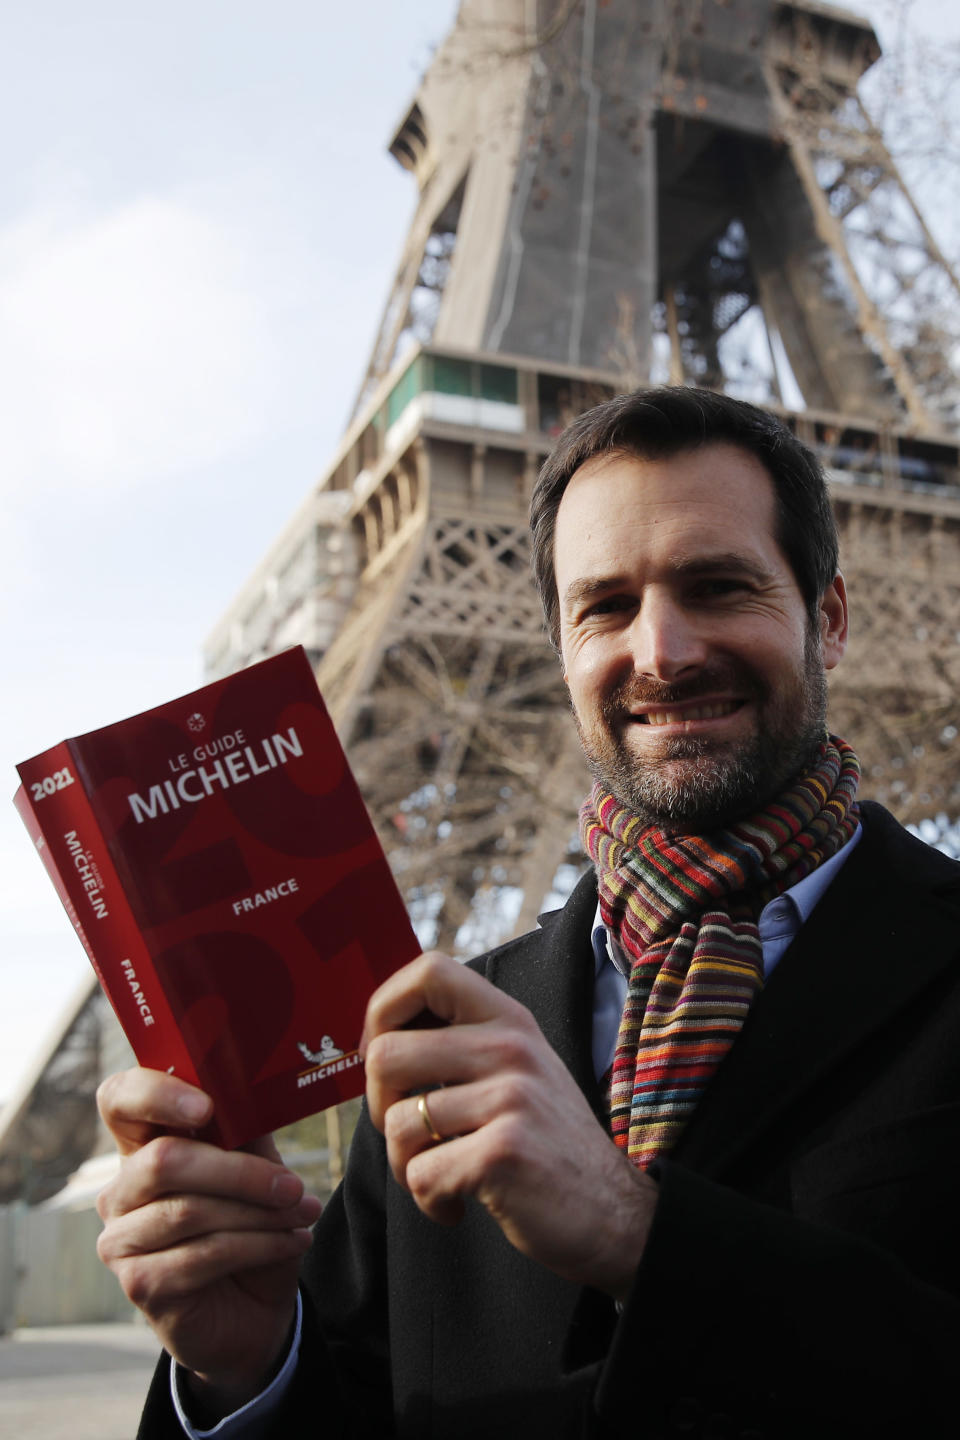 Gwendal Poullennec, head of Le Guide Michelin, poses with the 2021 edition outside the Eiffel Tower, Monday, Jan. 18, 2021 in Paris. Michelin will later announce the 2021 winners in a broadcast from the Eiffel Tower. (AP Photo/Francois Mori)